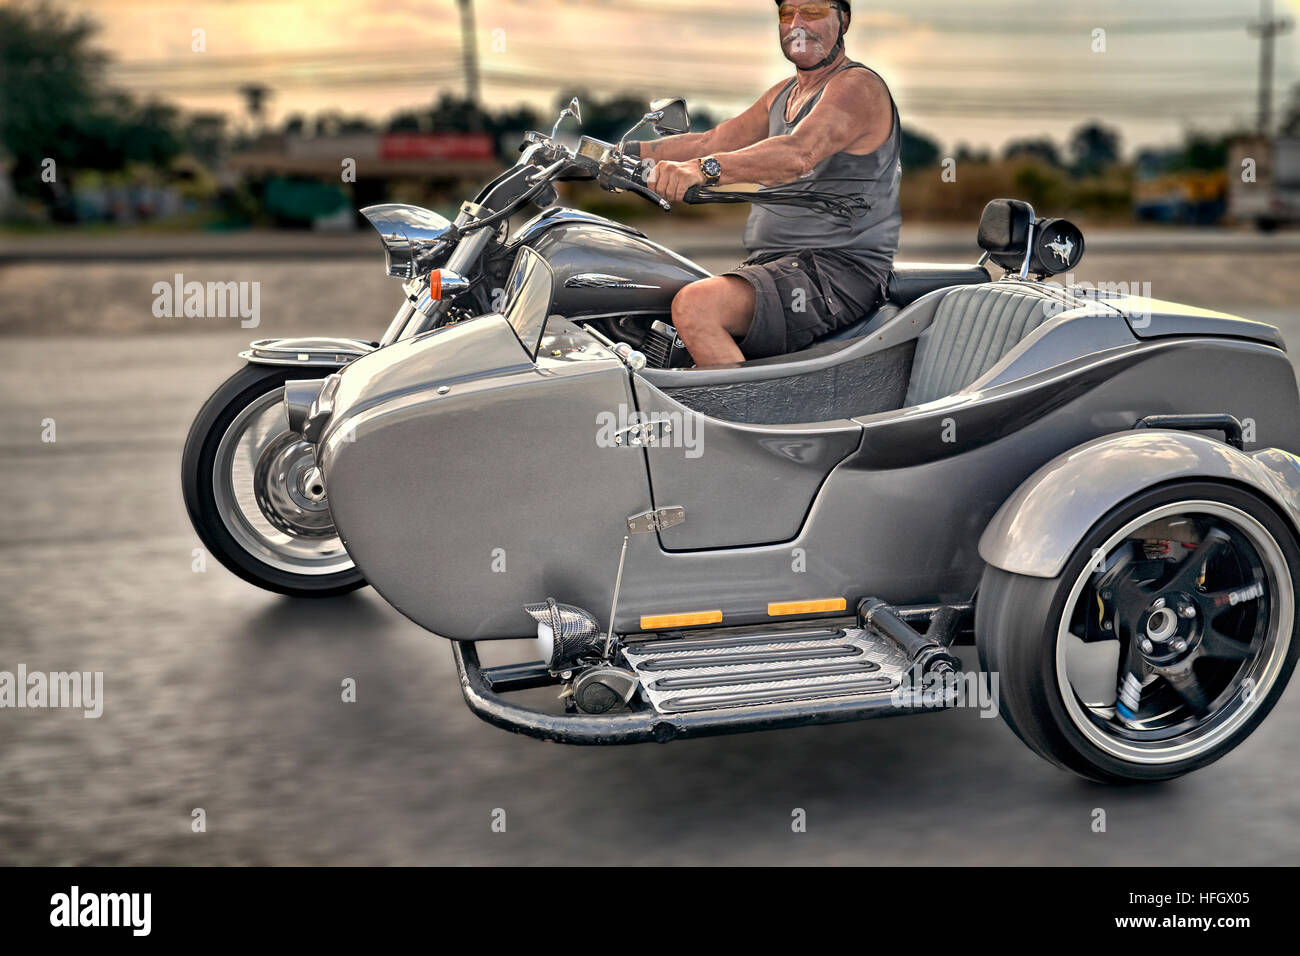 Motorcyclist riding customised motorcycle and sidecar Stock Photo